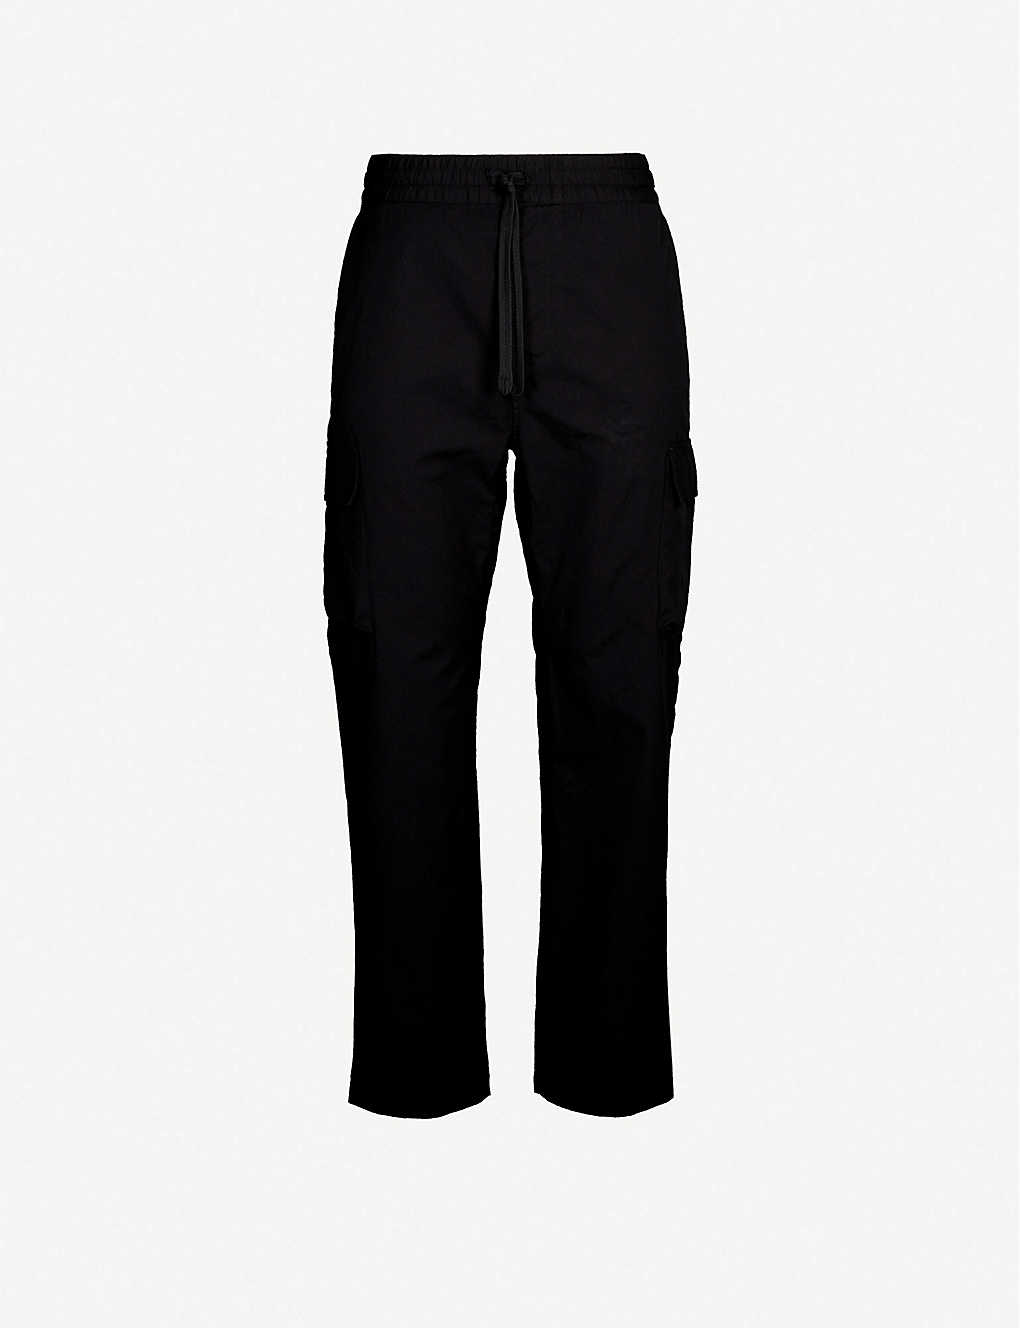 918485f2 CARHARTT WIP - Laxford relaxed-fit cotton-twill trousers ...